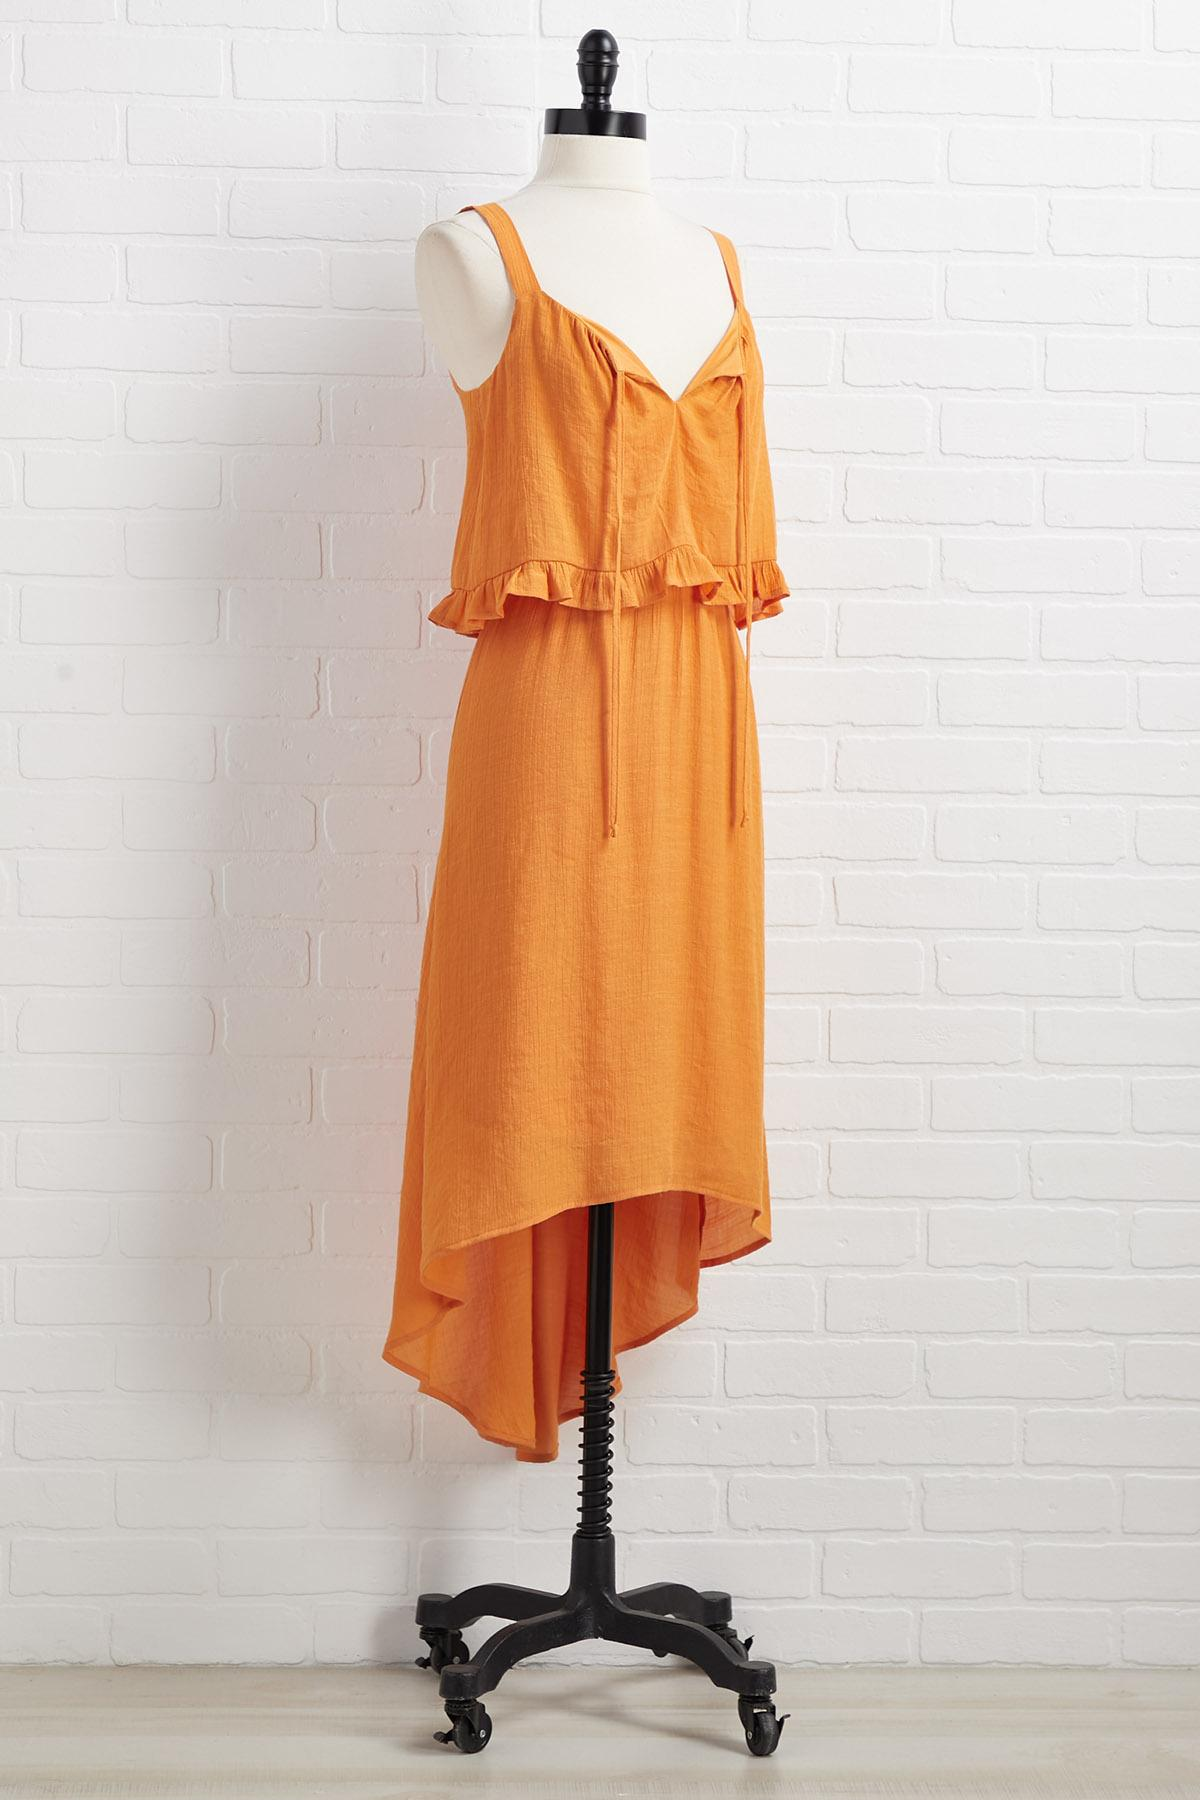 Middle Ground Dress